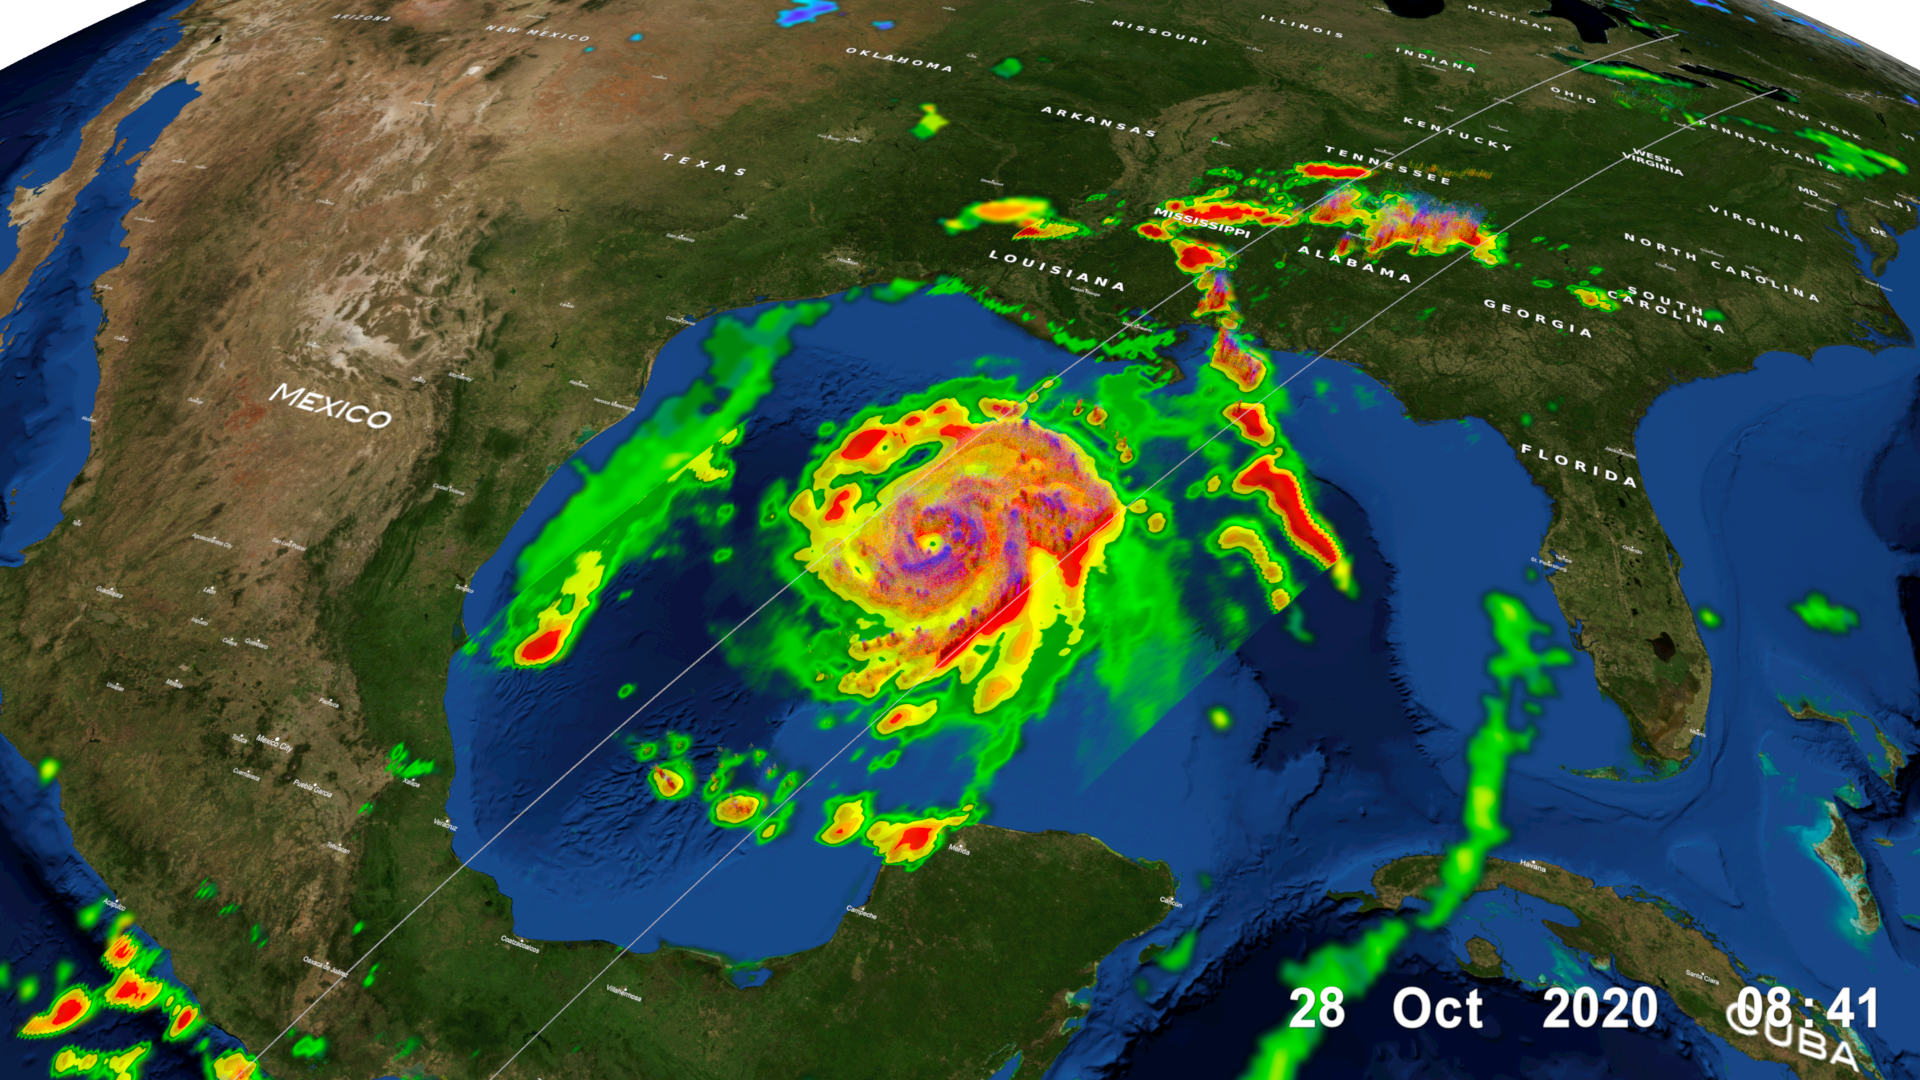 GPM Core Observatory overpass of Tropical Storm Zeta on October 28 at approximately 3:25am CDT (8:25 UTC), showing the structure and intensity of precipitation within the storm. Credit: NASA Goddard Scientific Visualization Studio